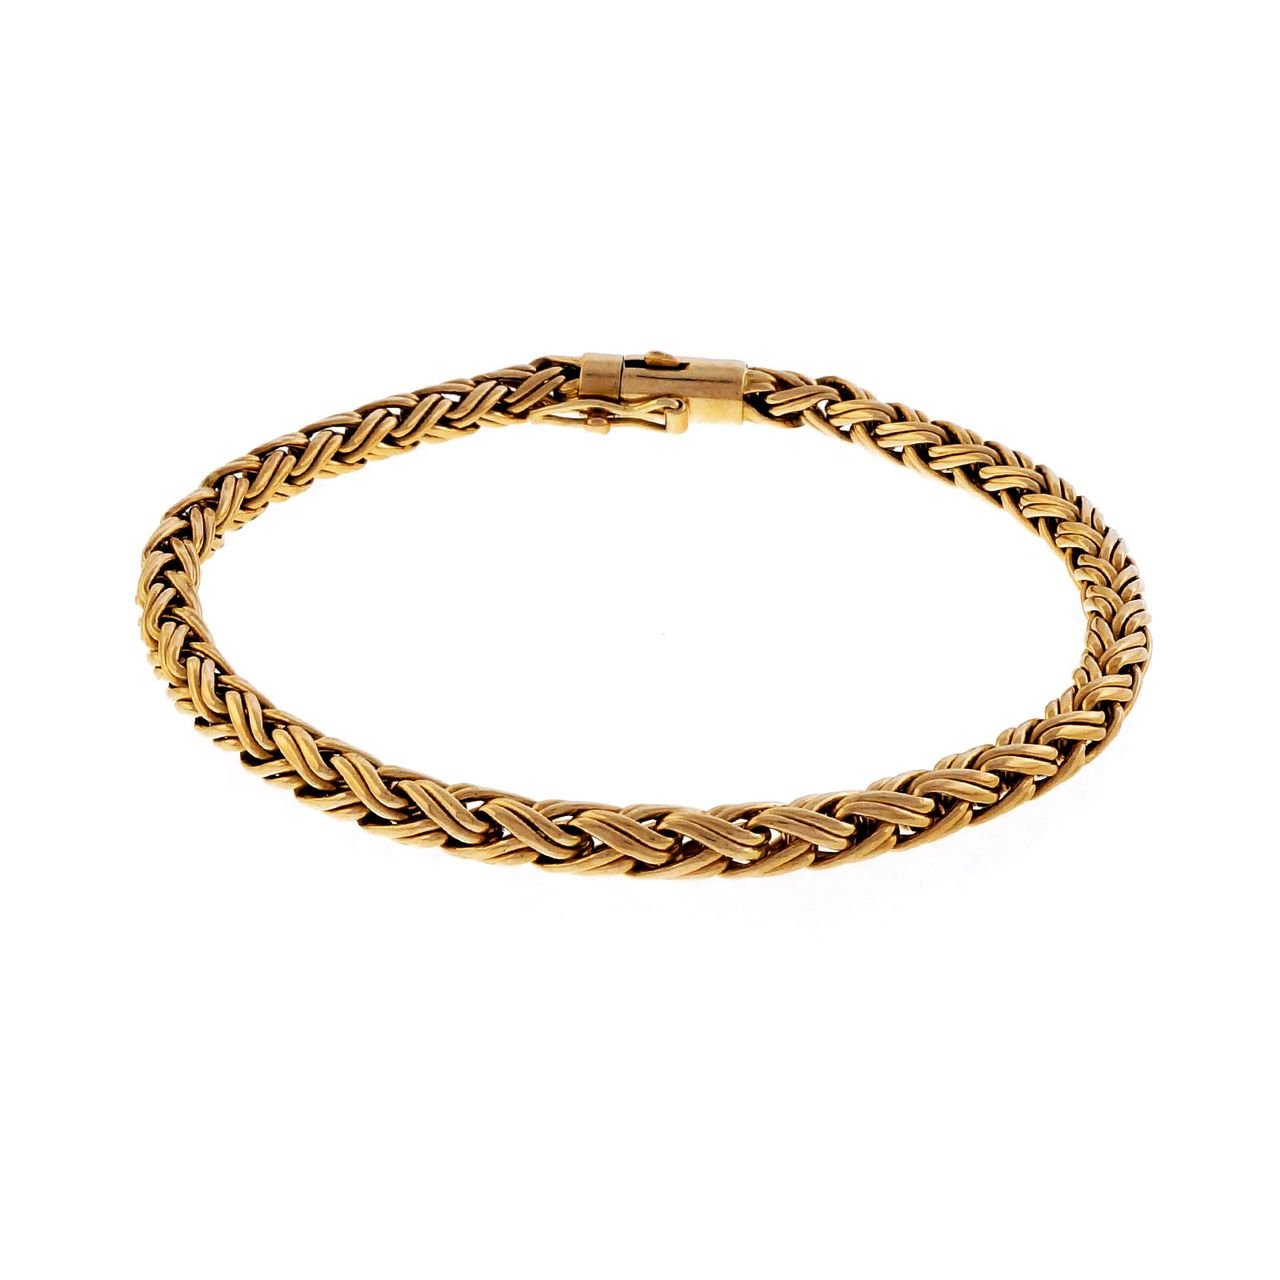 Estate tiffany u co mm wheat bracelet k yellow gold yellow gold